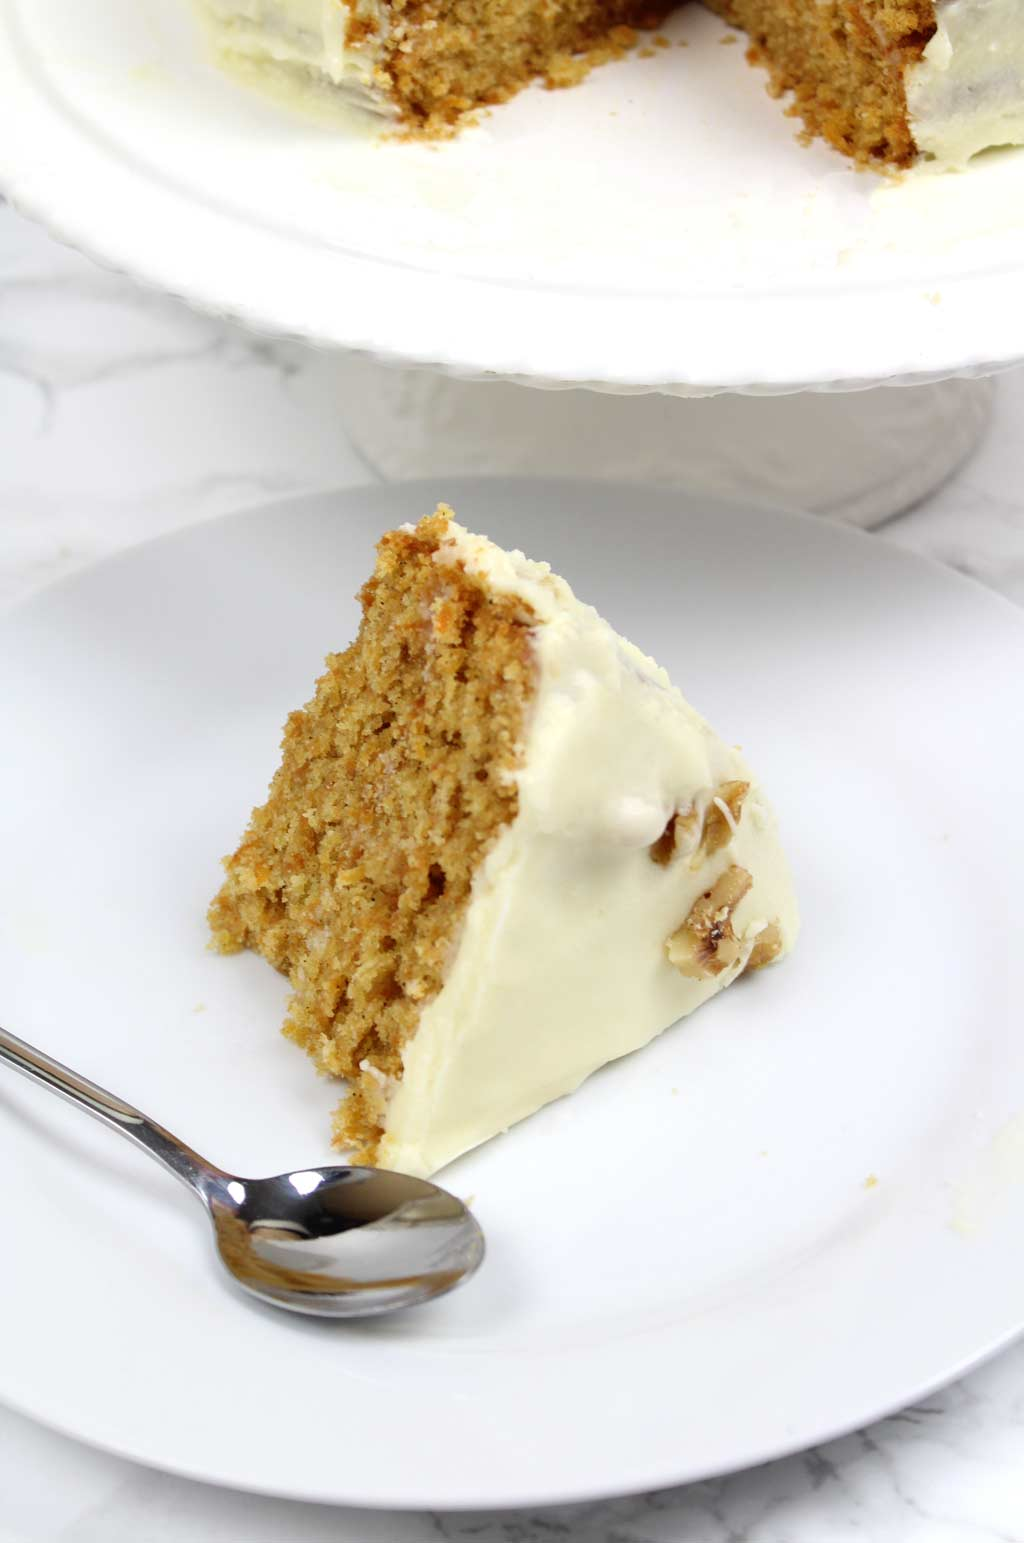 a slice of vegan carrot cake on a plate